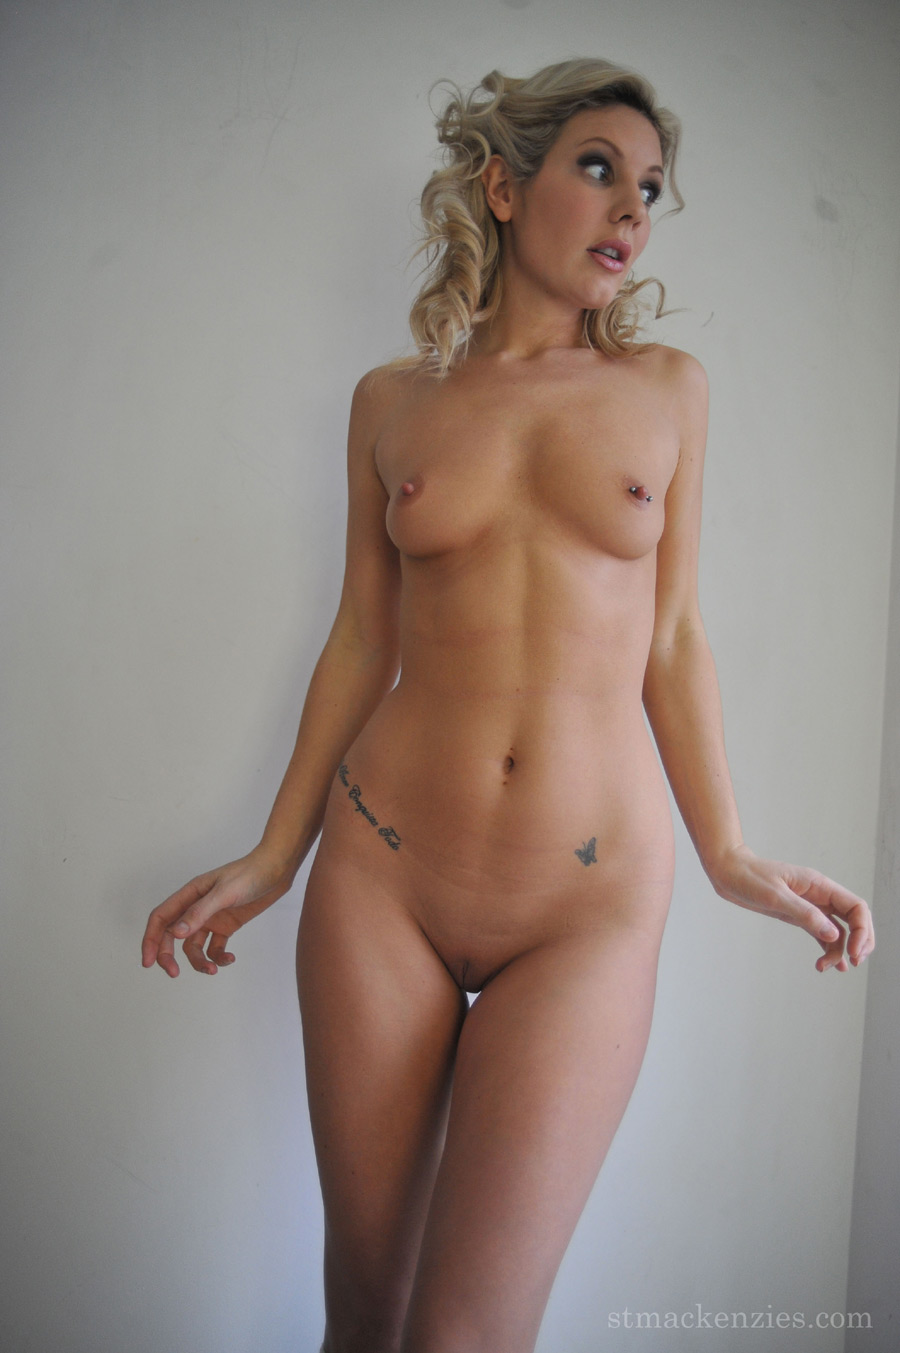 Get sweet babe surprised with big dick xxx for free